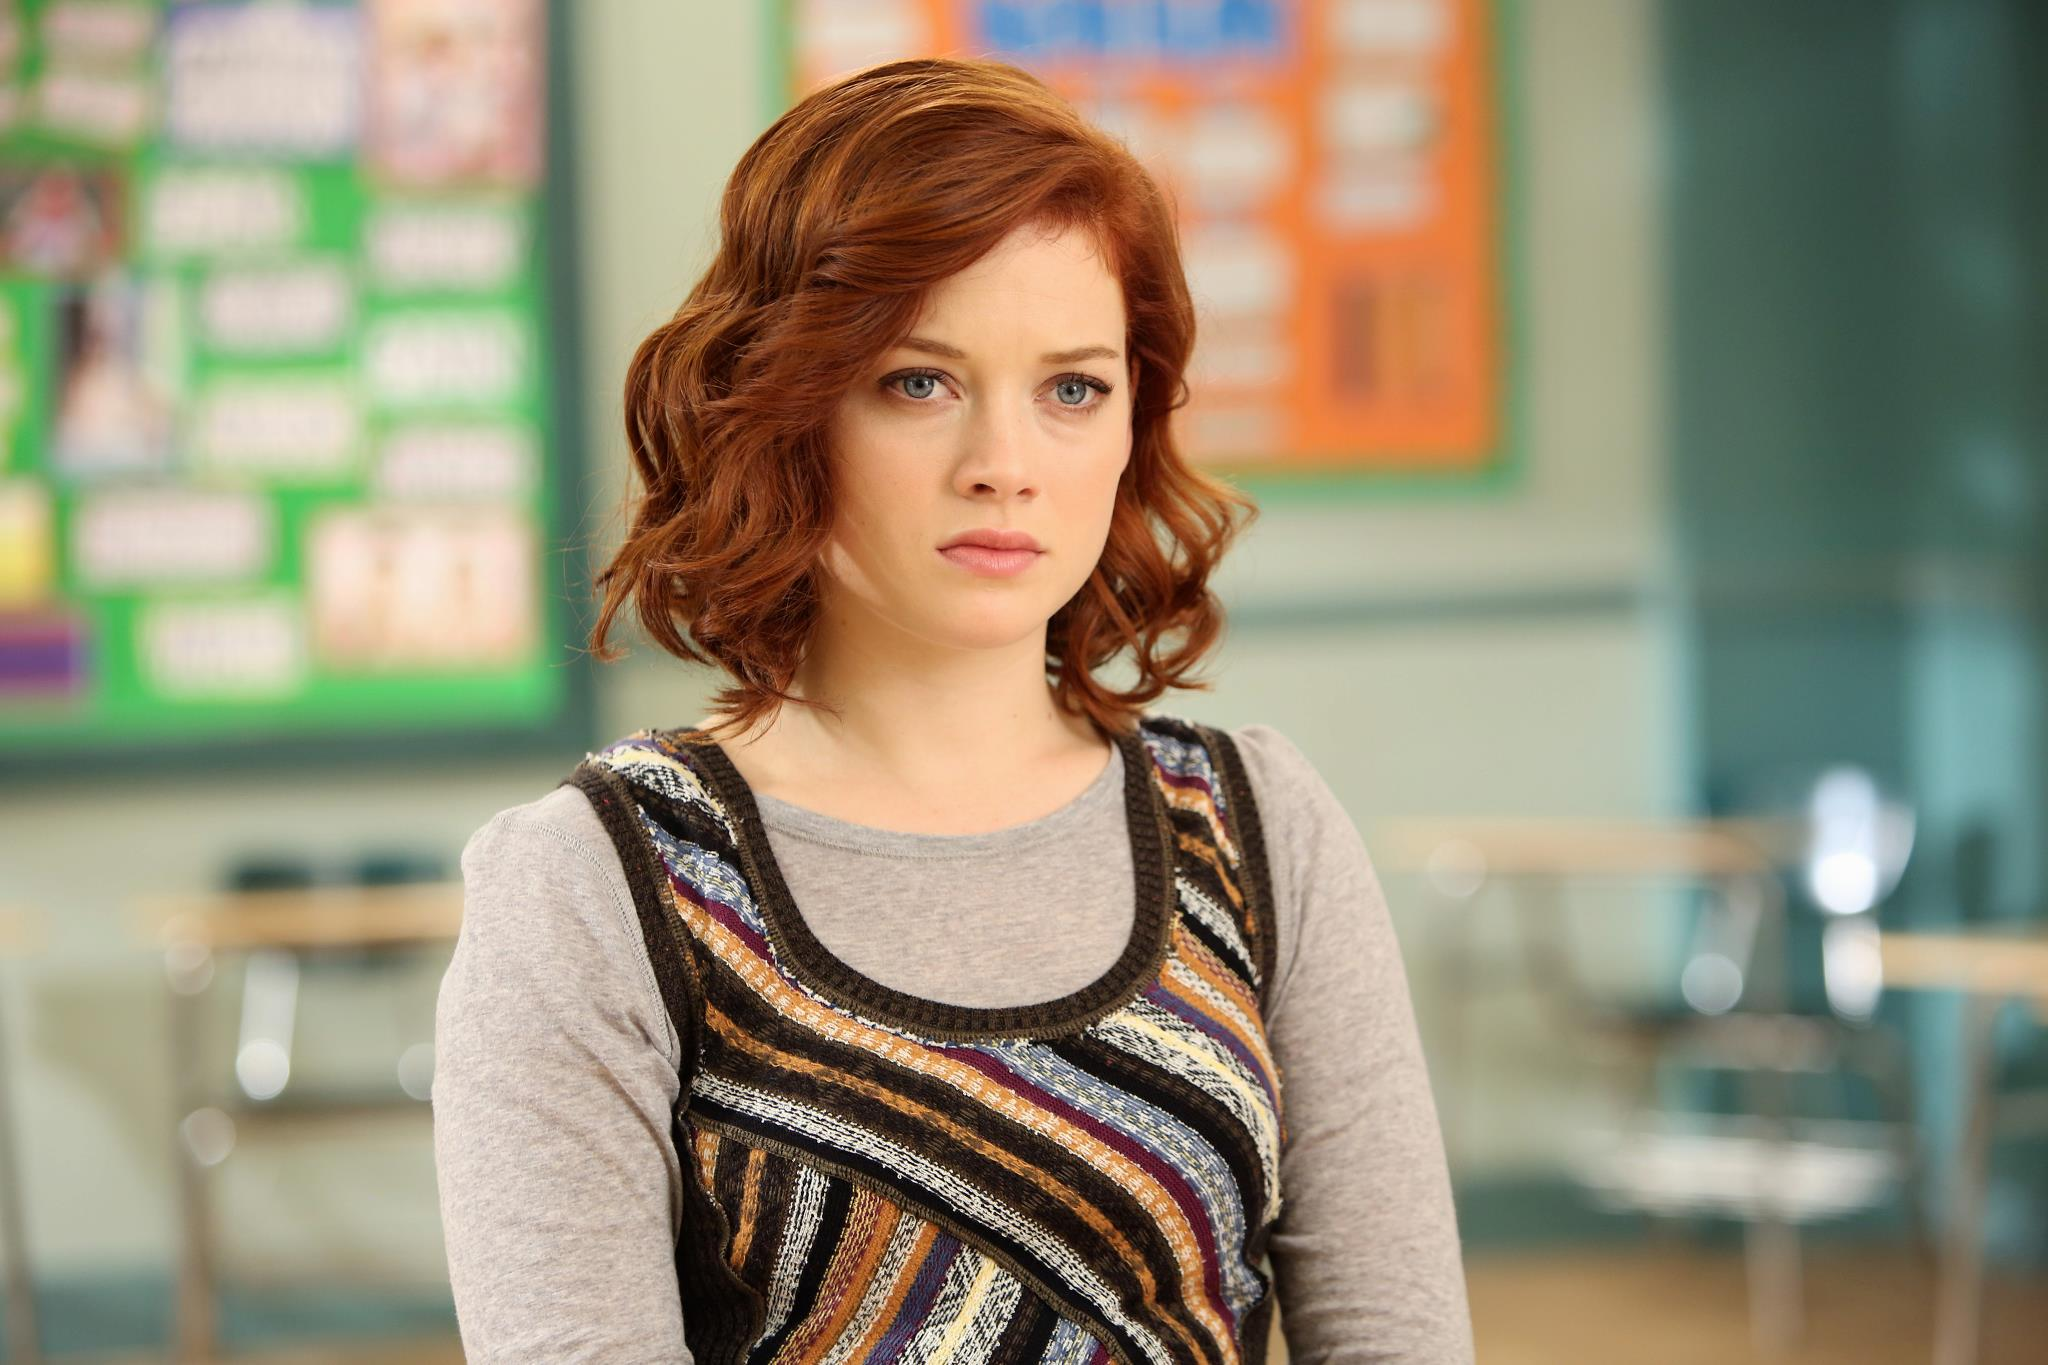 Young Jane Levy nudes (43 photo), Tits, Cleavage, Selfie, braless 2019